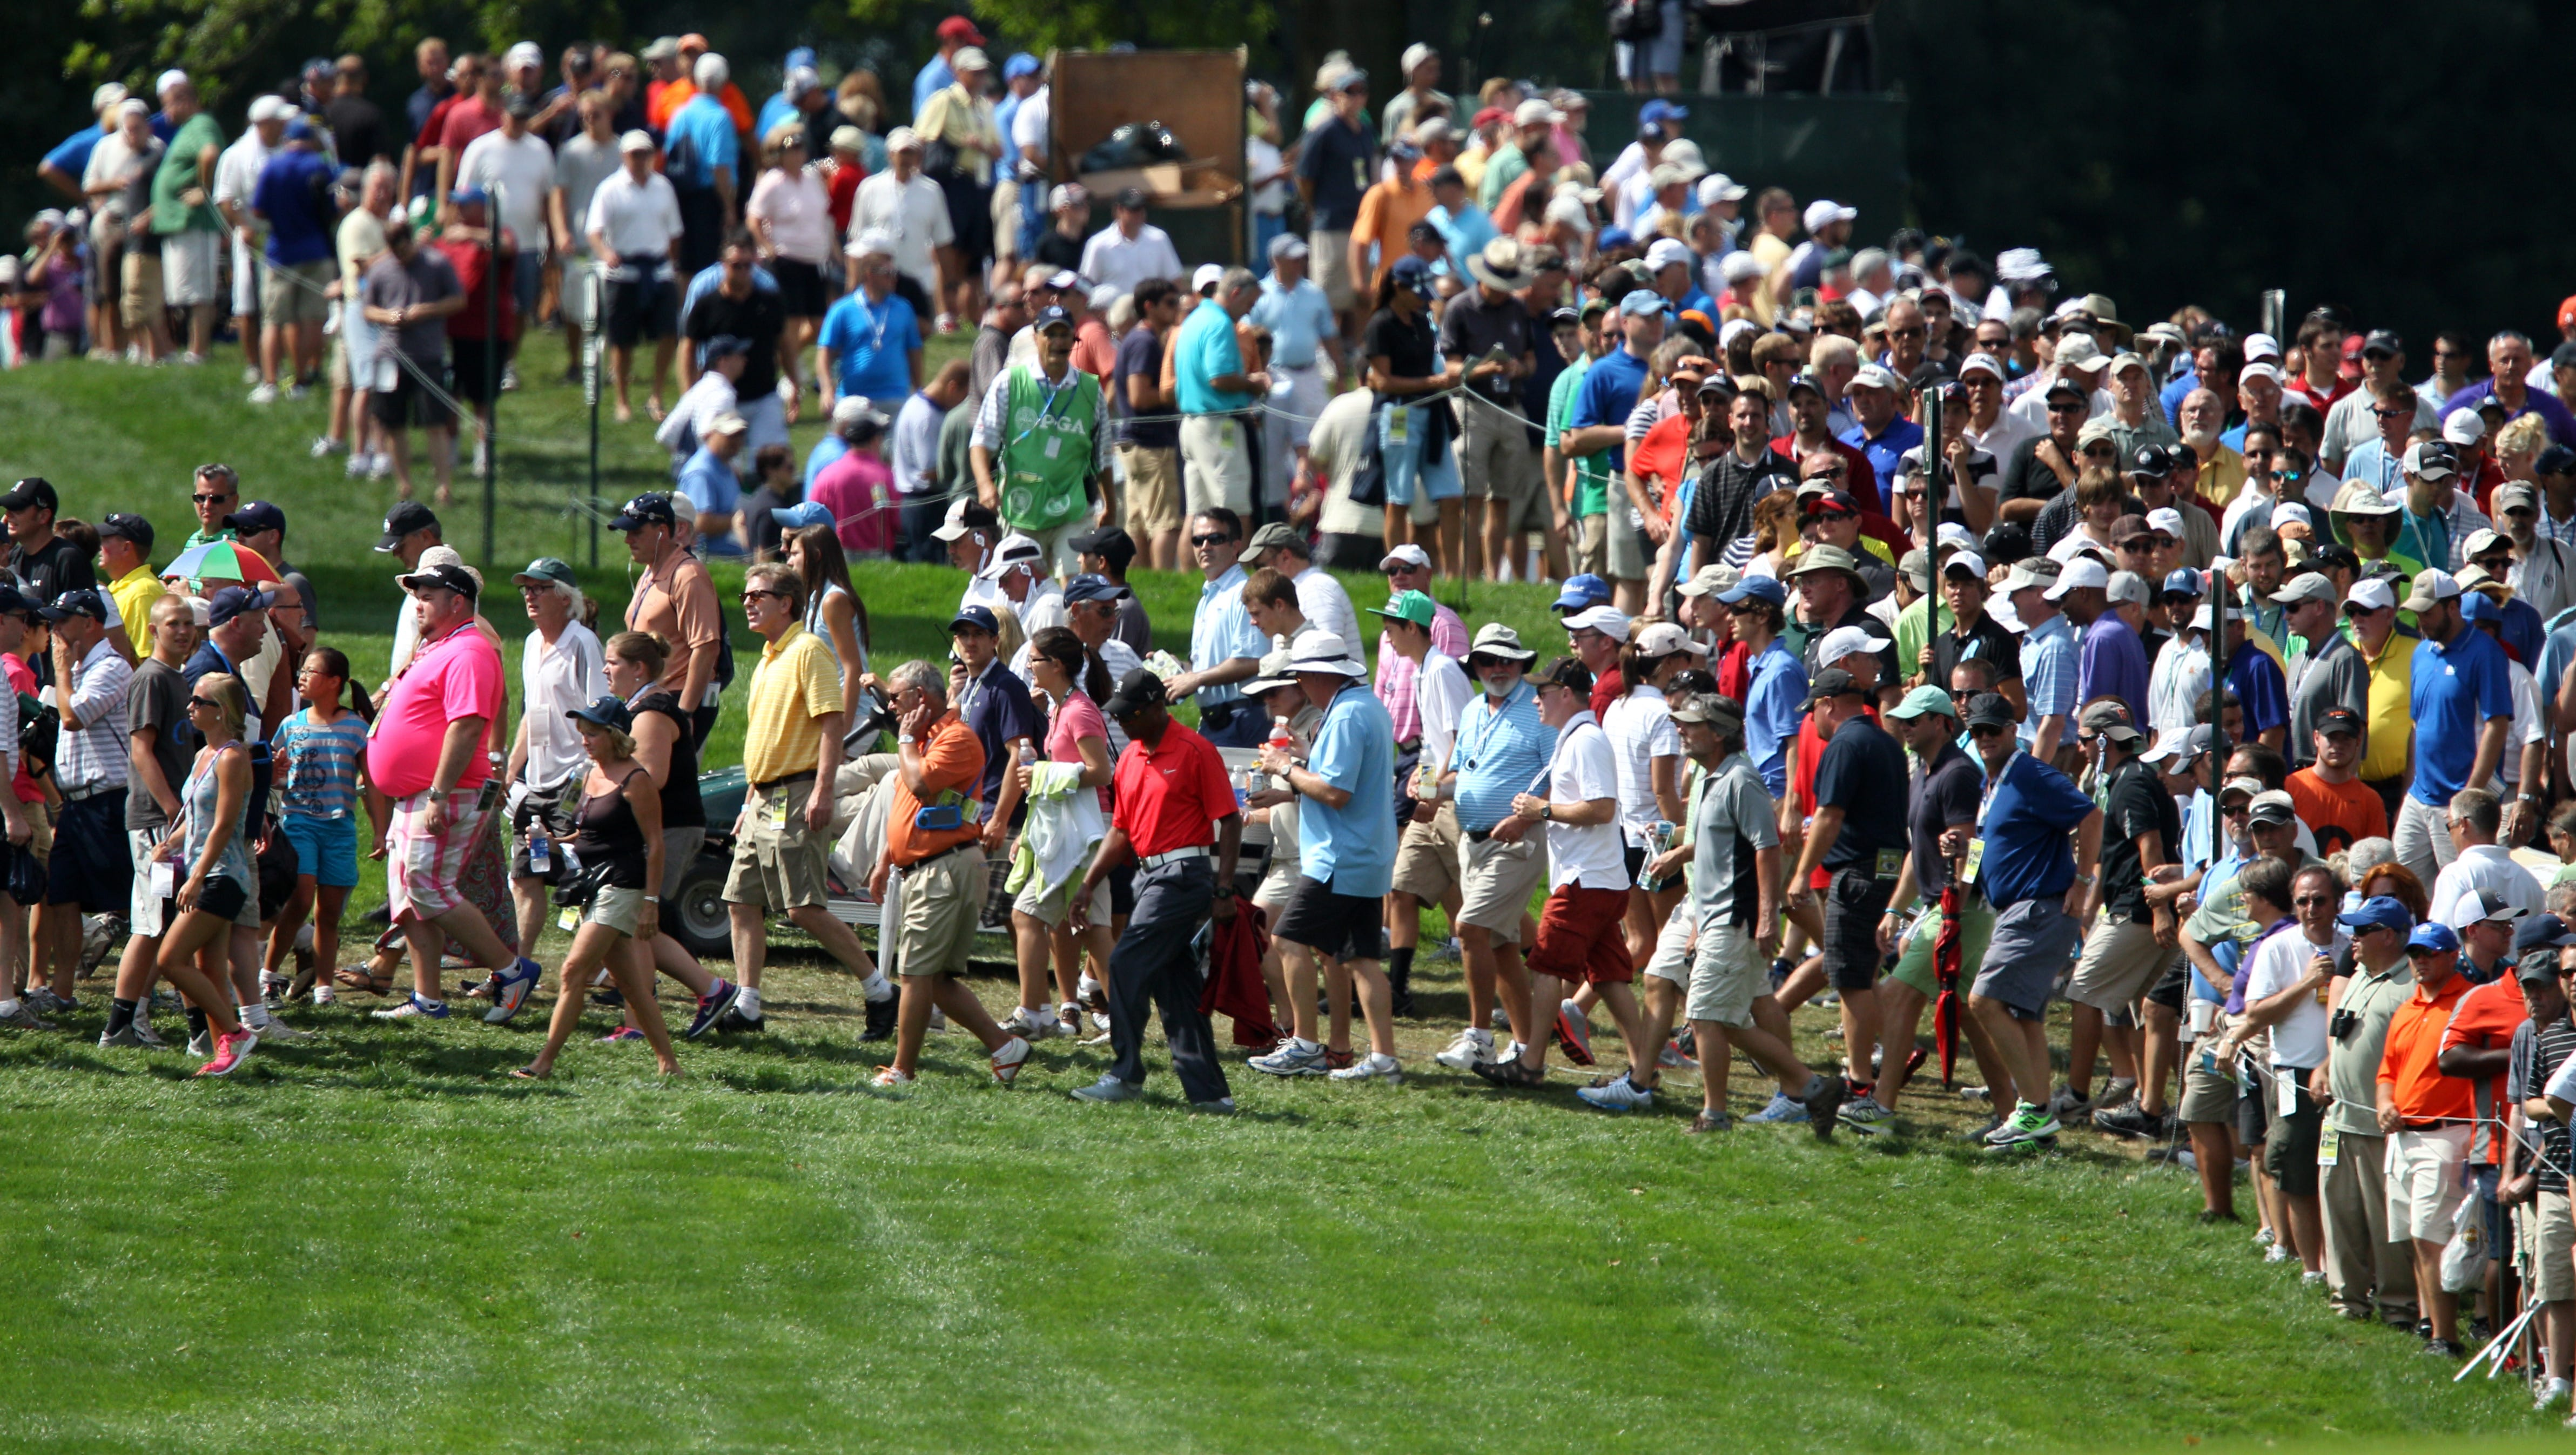 Fans cross 18 following Tiger woods during the first round of the 95th PGA Championship at Oak Hill in Pittsford, NY August 8, 2013.